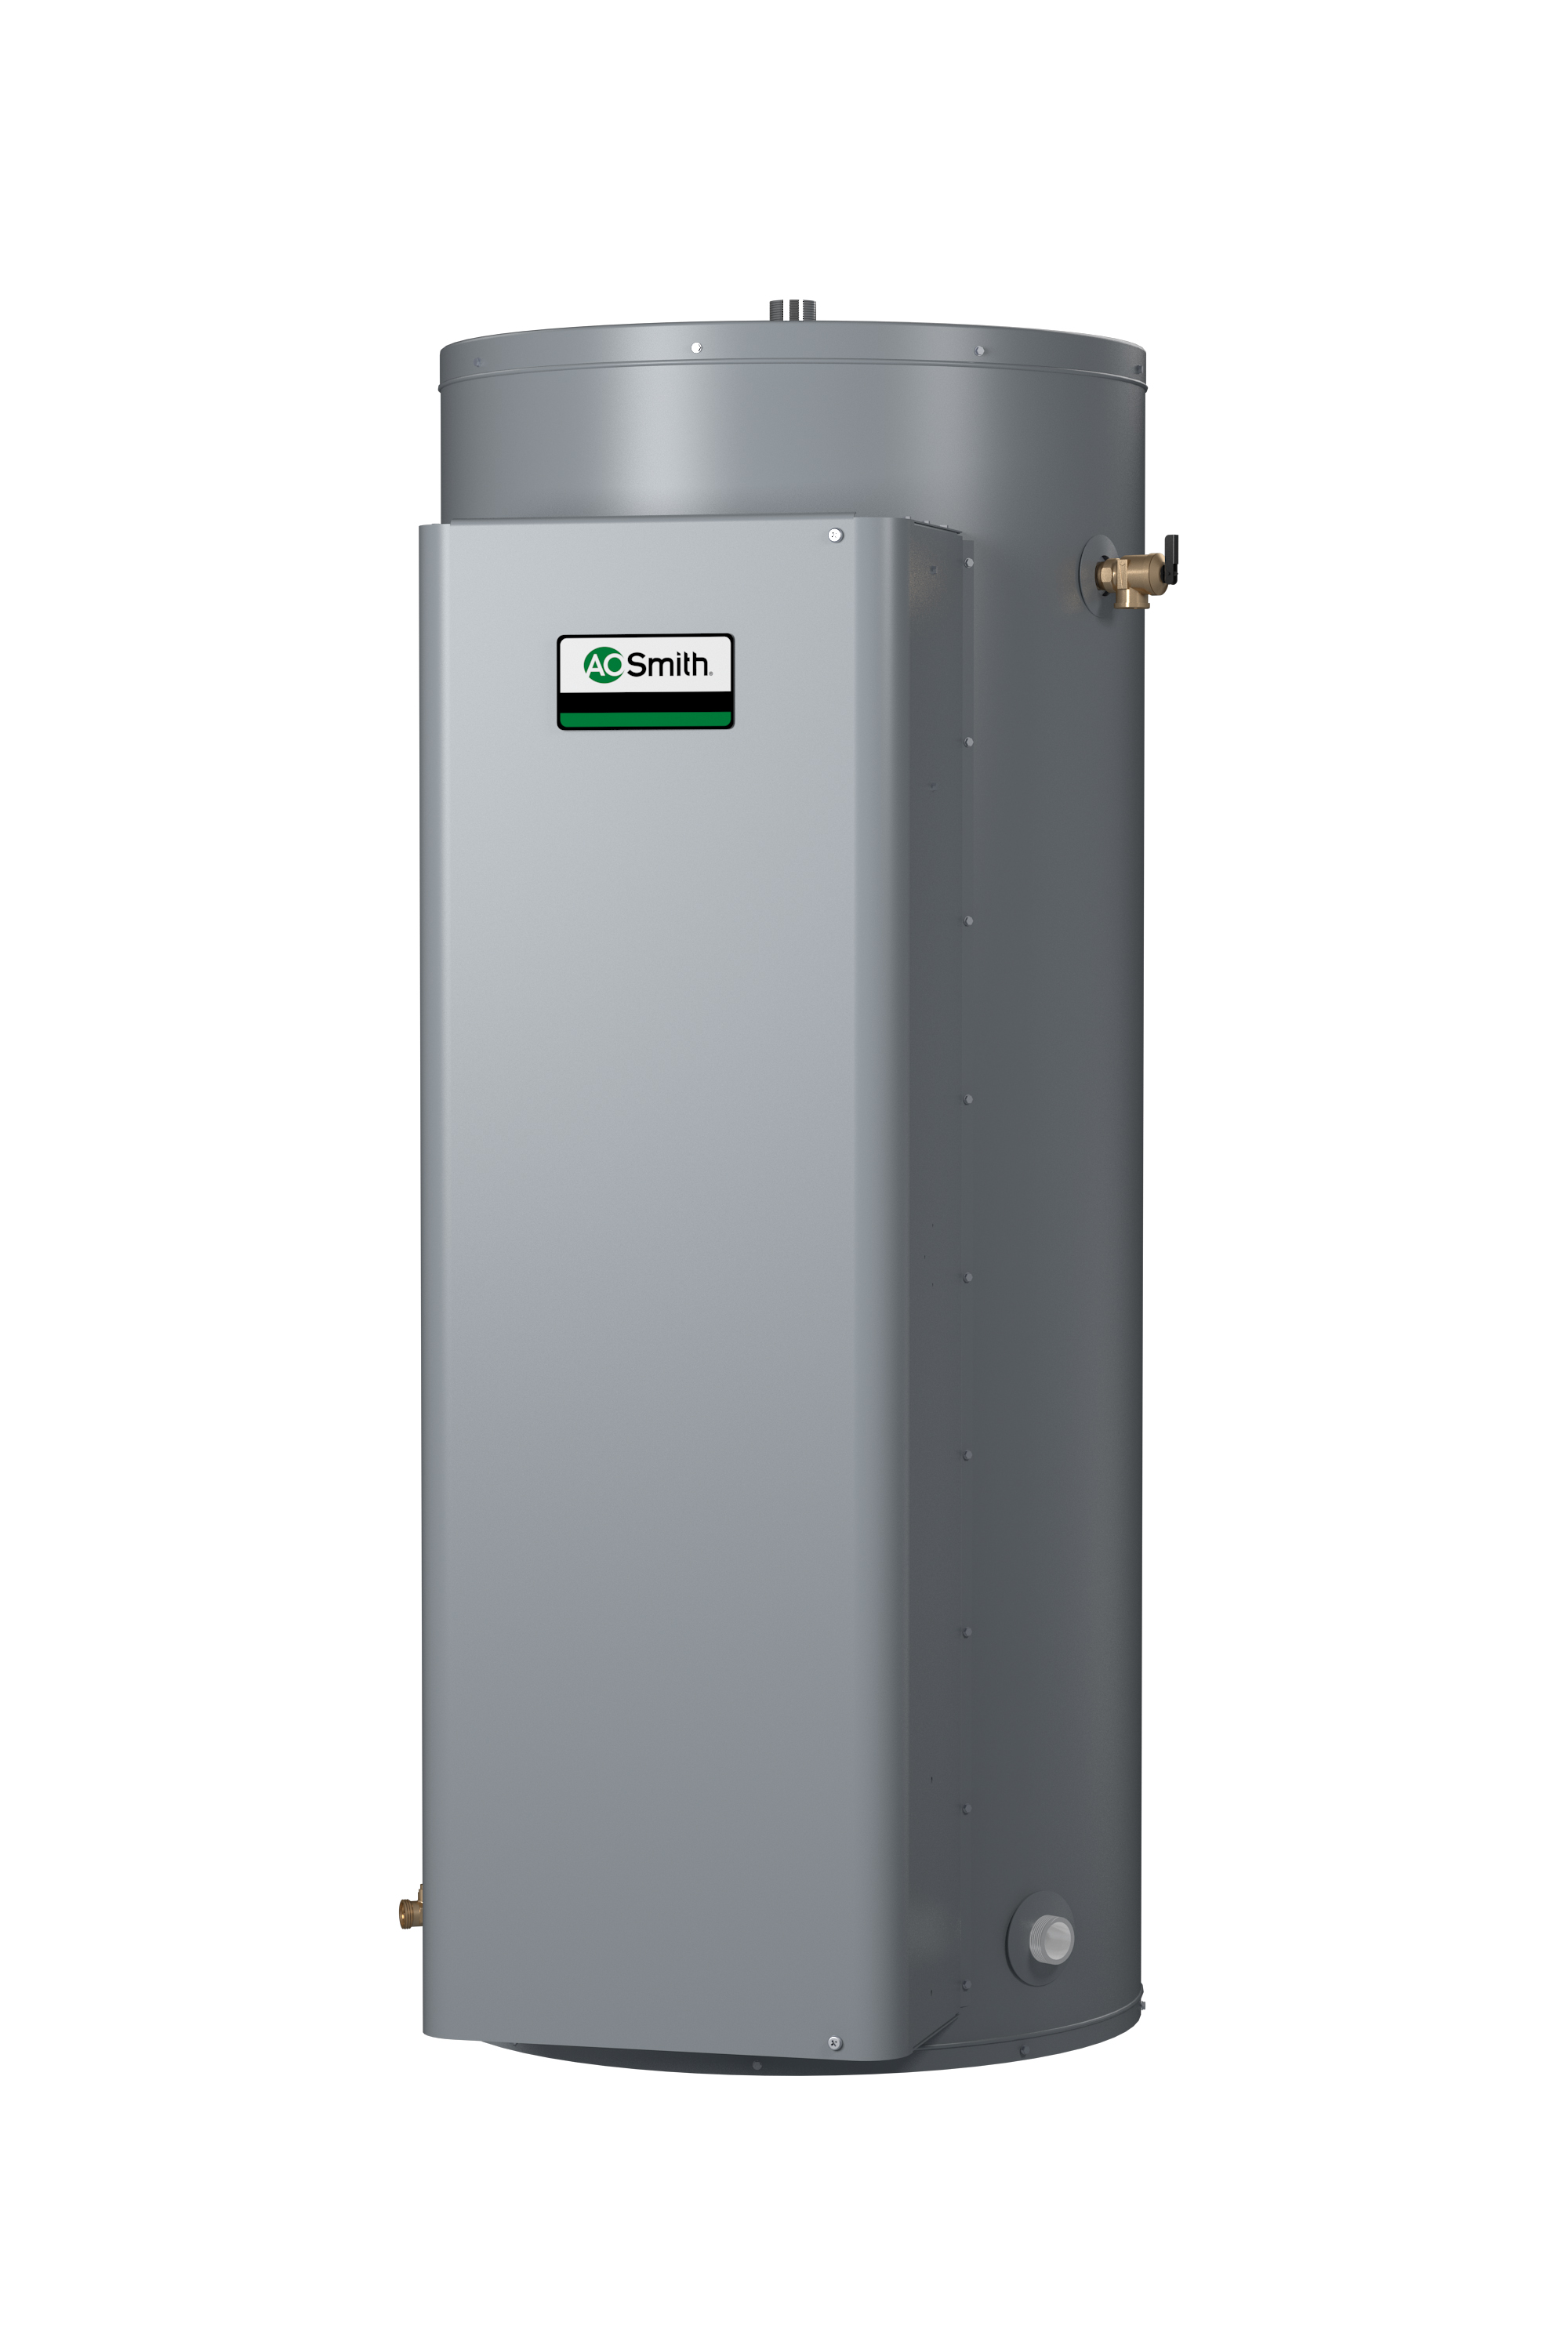 AO Smith DRE Water Heater Electric